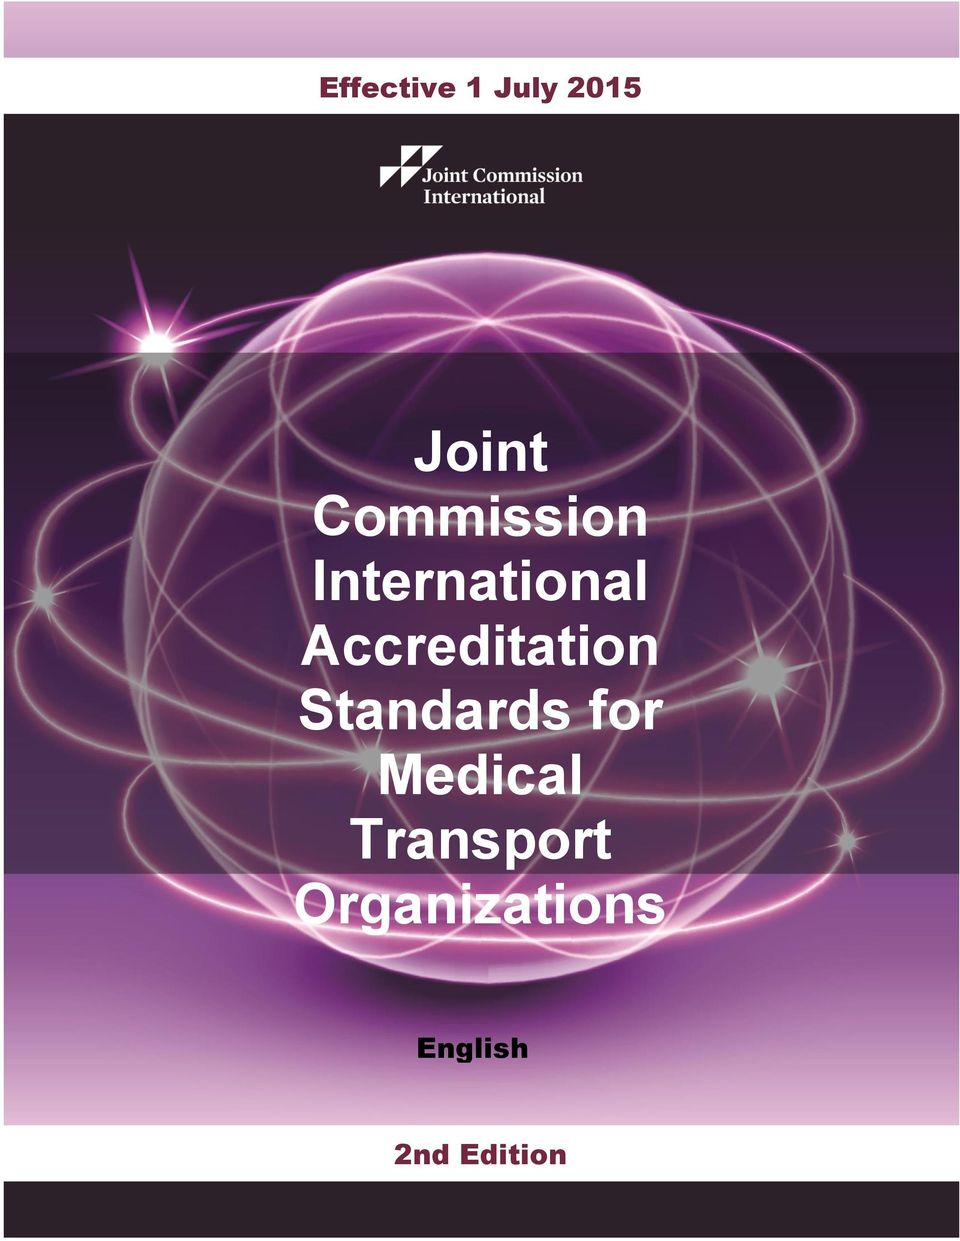 Accreditation Standards for